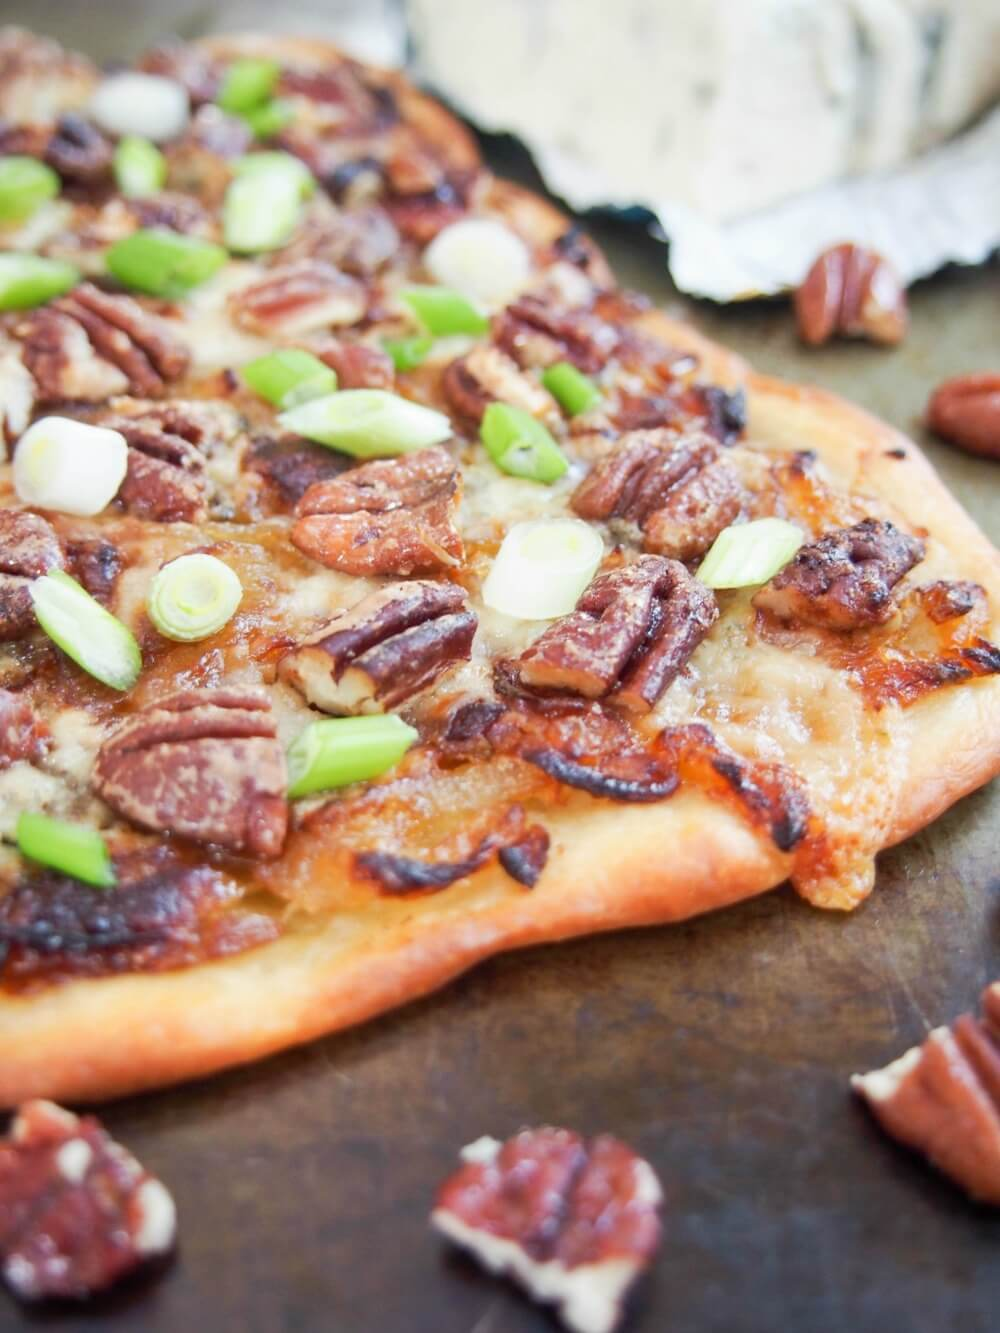 This caramelized onion and gorgonzola pizza is not exactly your typical slice, but if you're a gorgonzola and pecan fan, you're sure to love it. Comforting flavors, so delicious. Great as an appetizer or make it a meal.